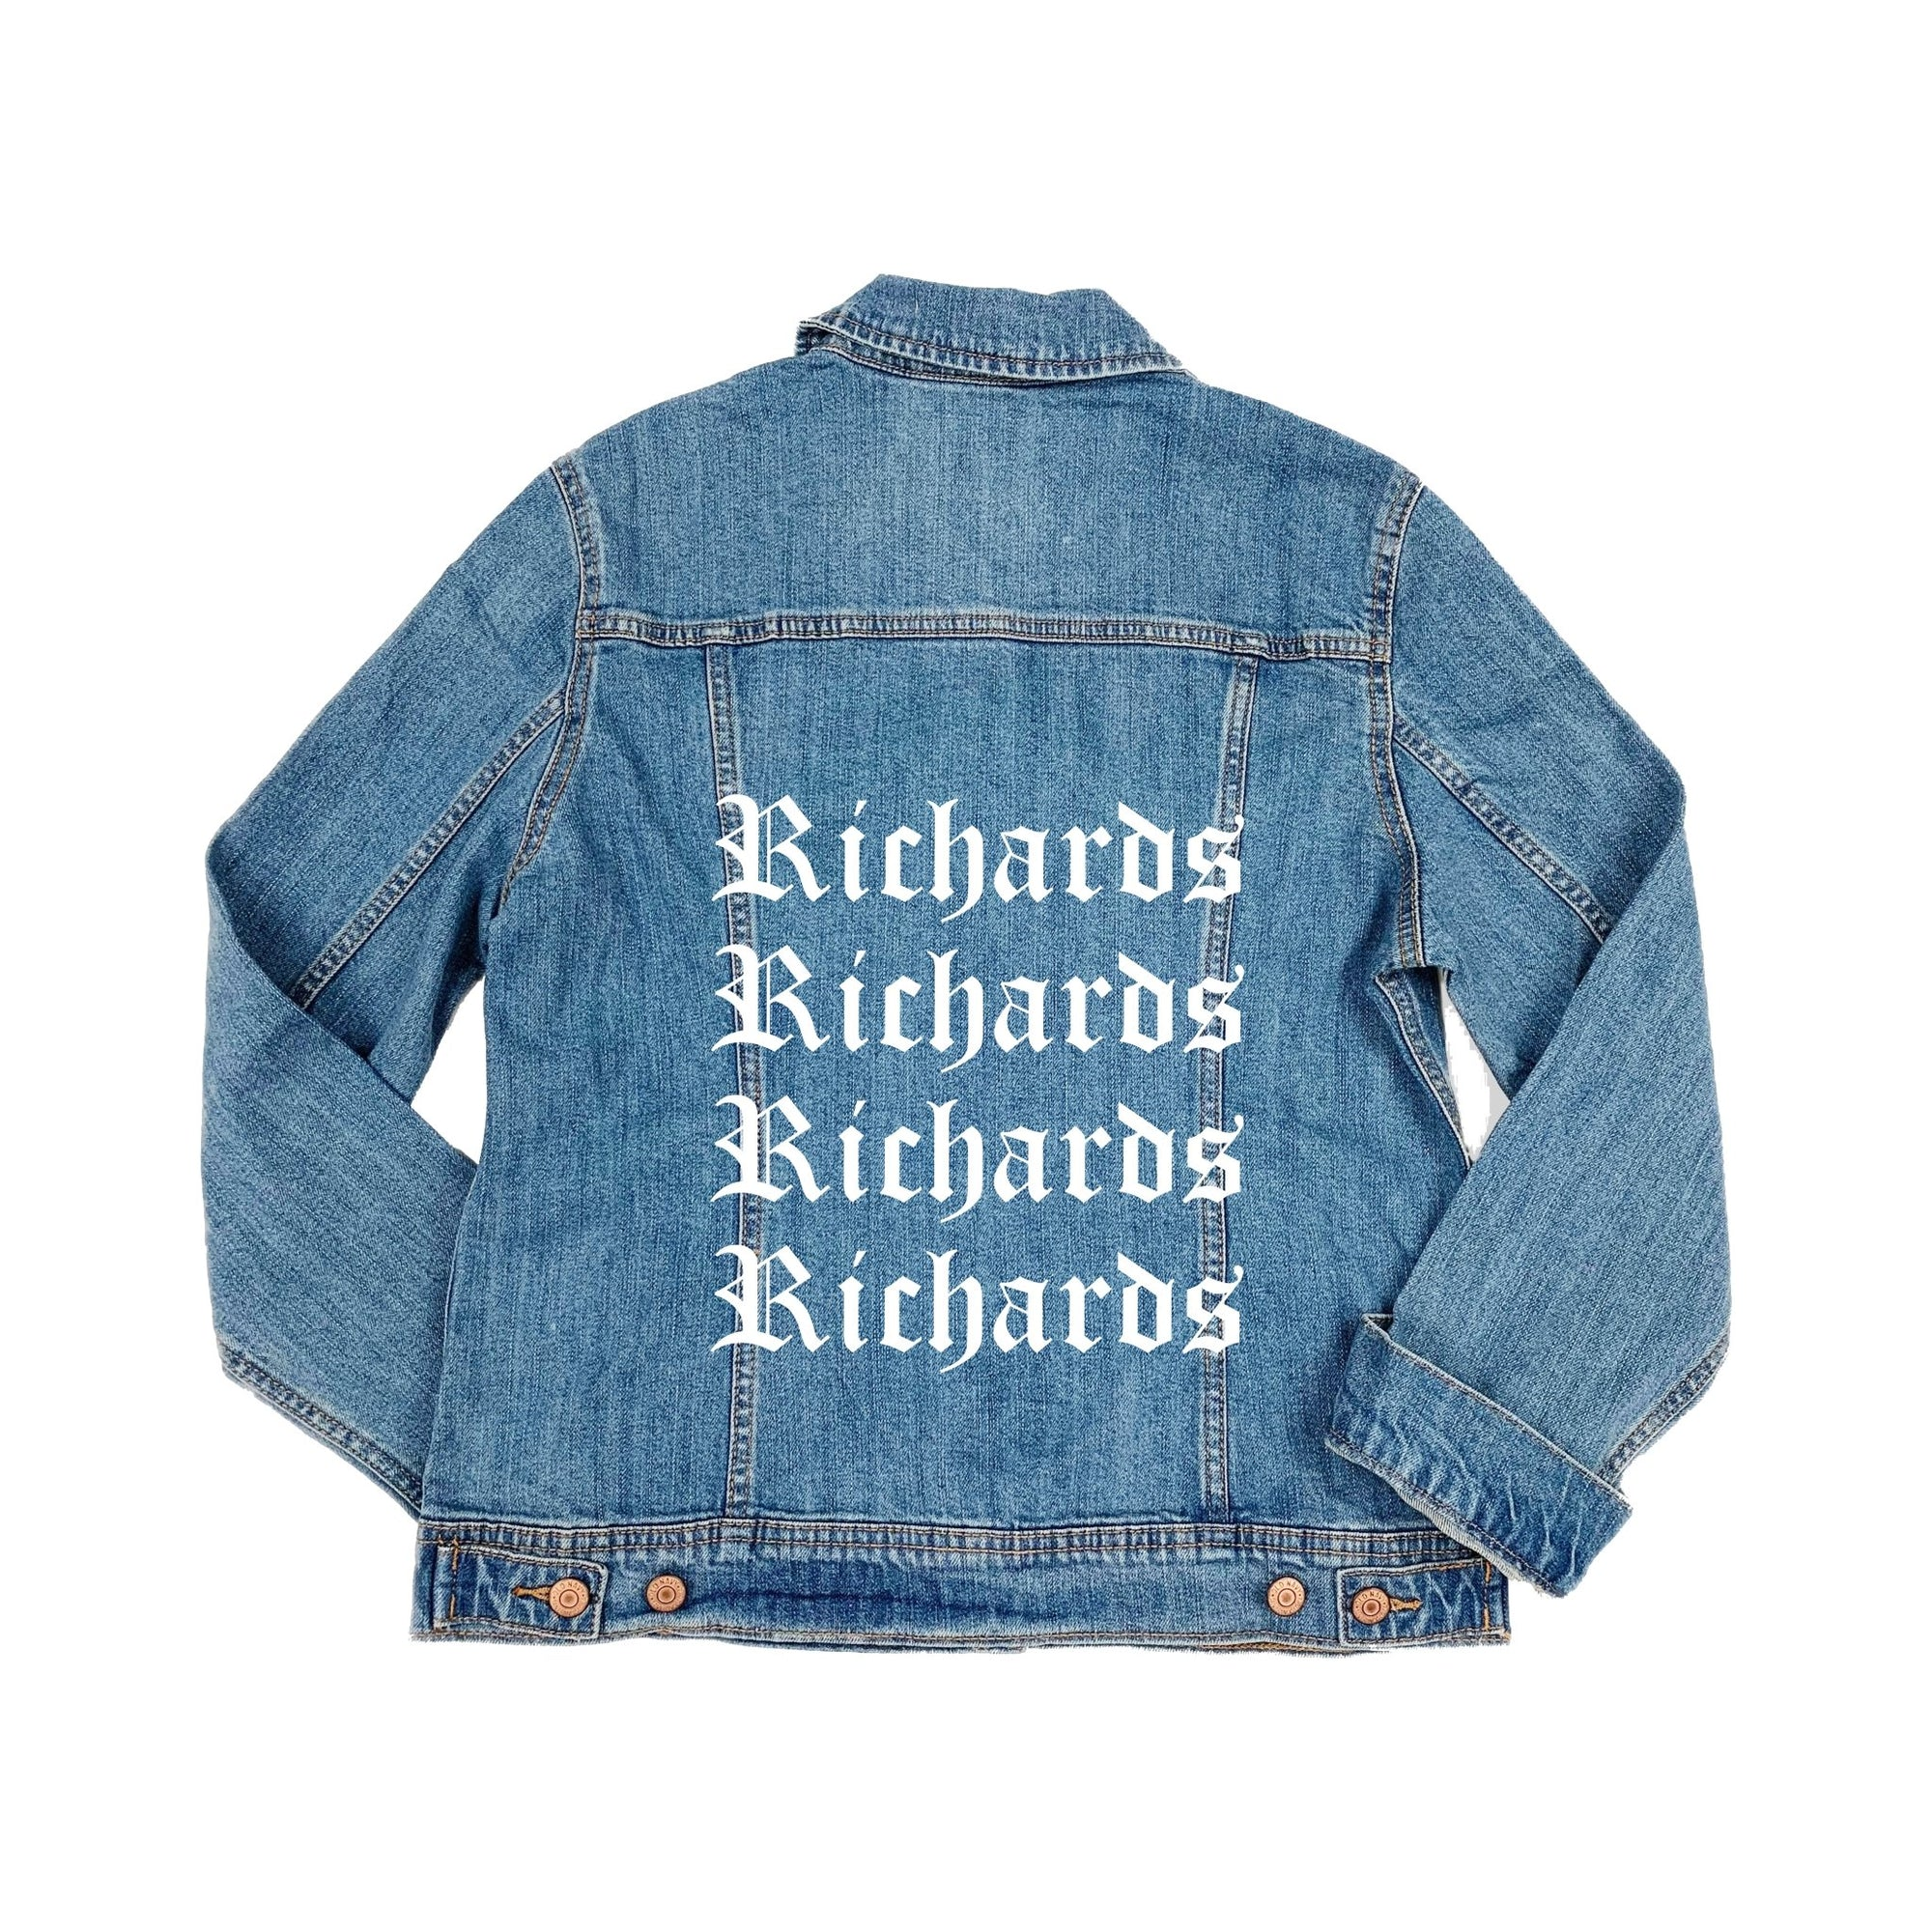 Repeat Denim Jacket - Sprinkled With Pink #bachelorette #custom #gifts